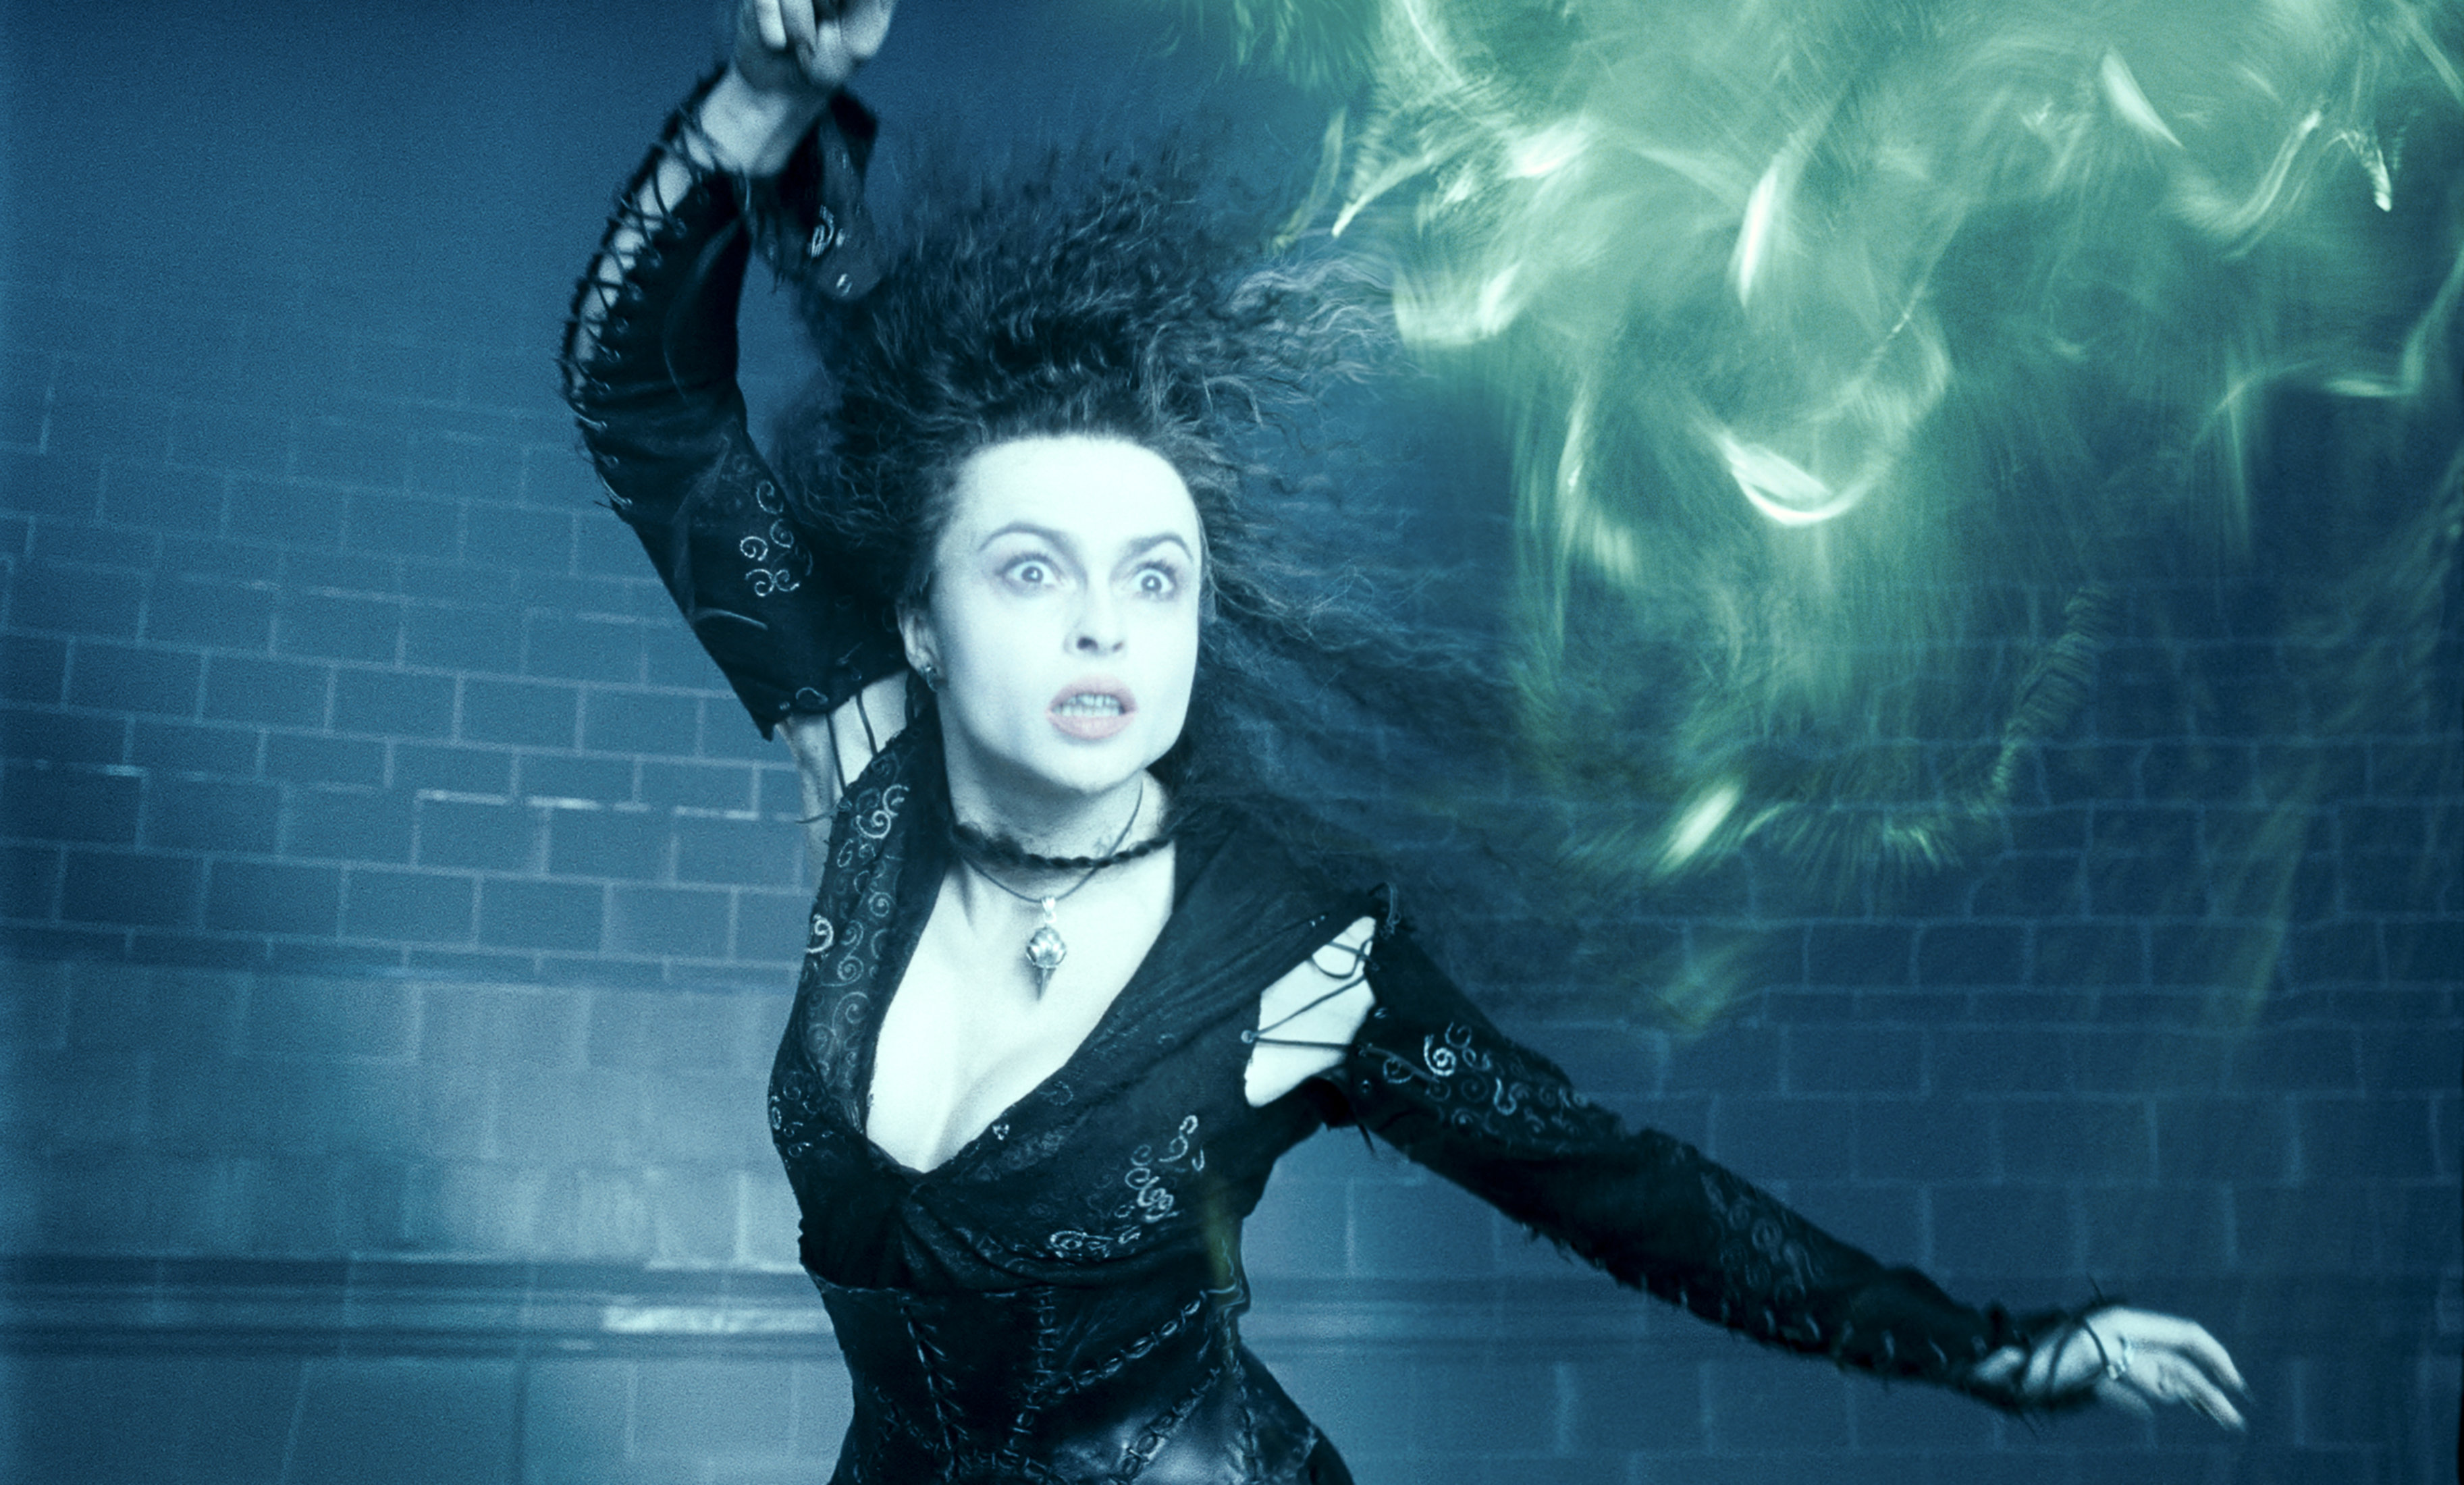 What is the worst spell from the wizarding world? | Wizarding World